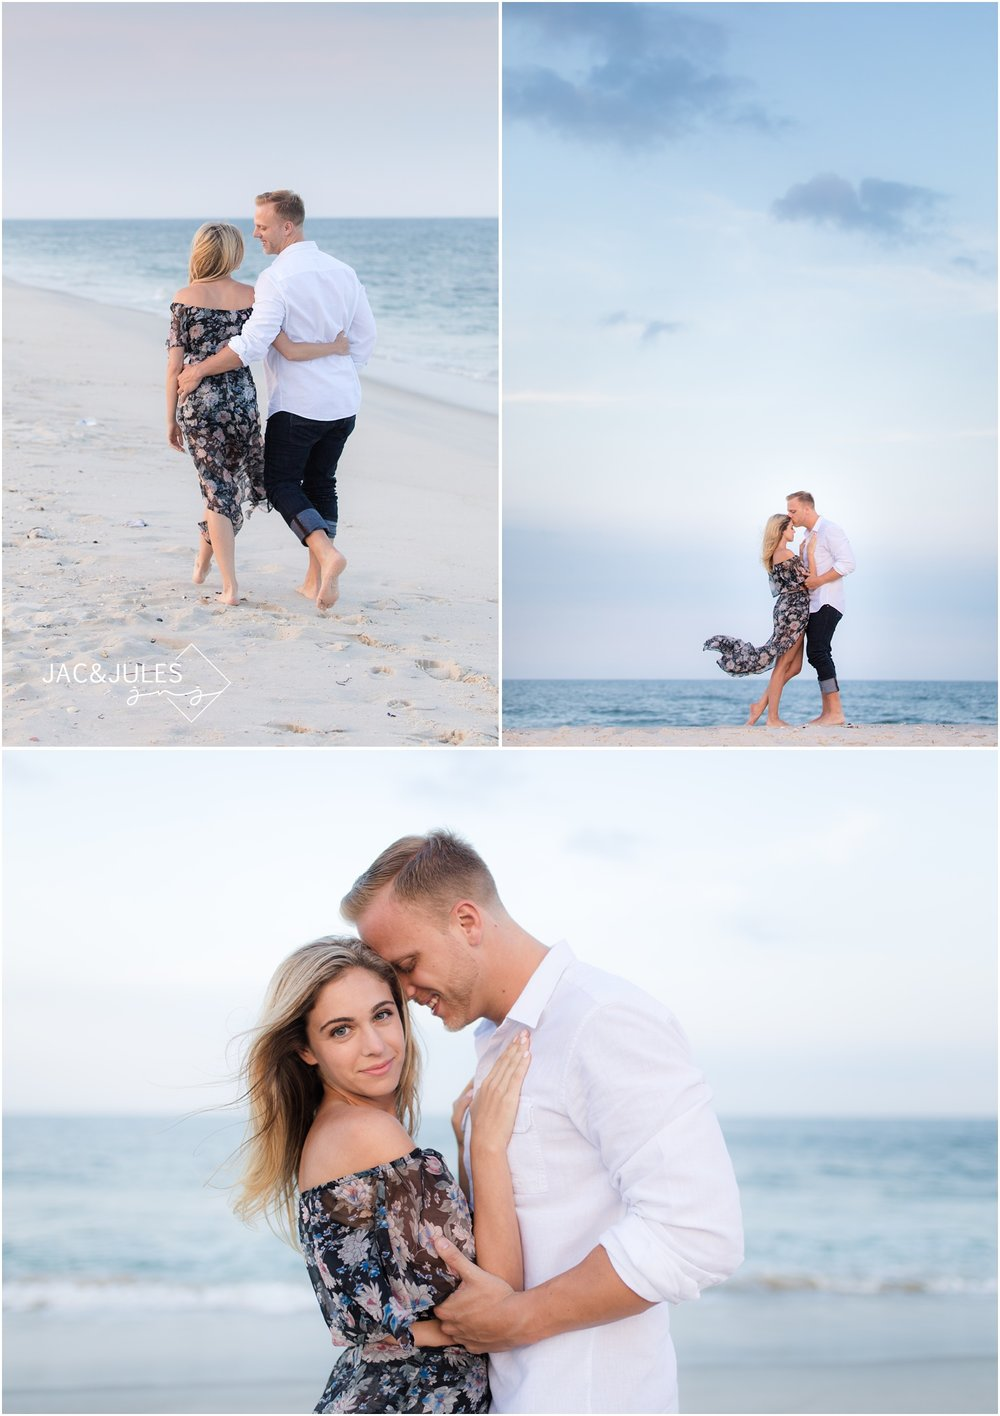 awesome engagement photos on the beach in Seaside Park, NJ.